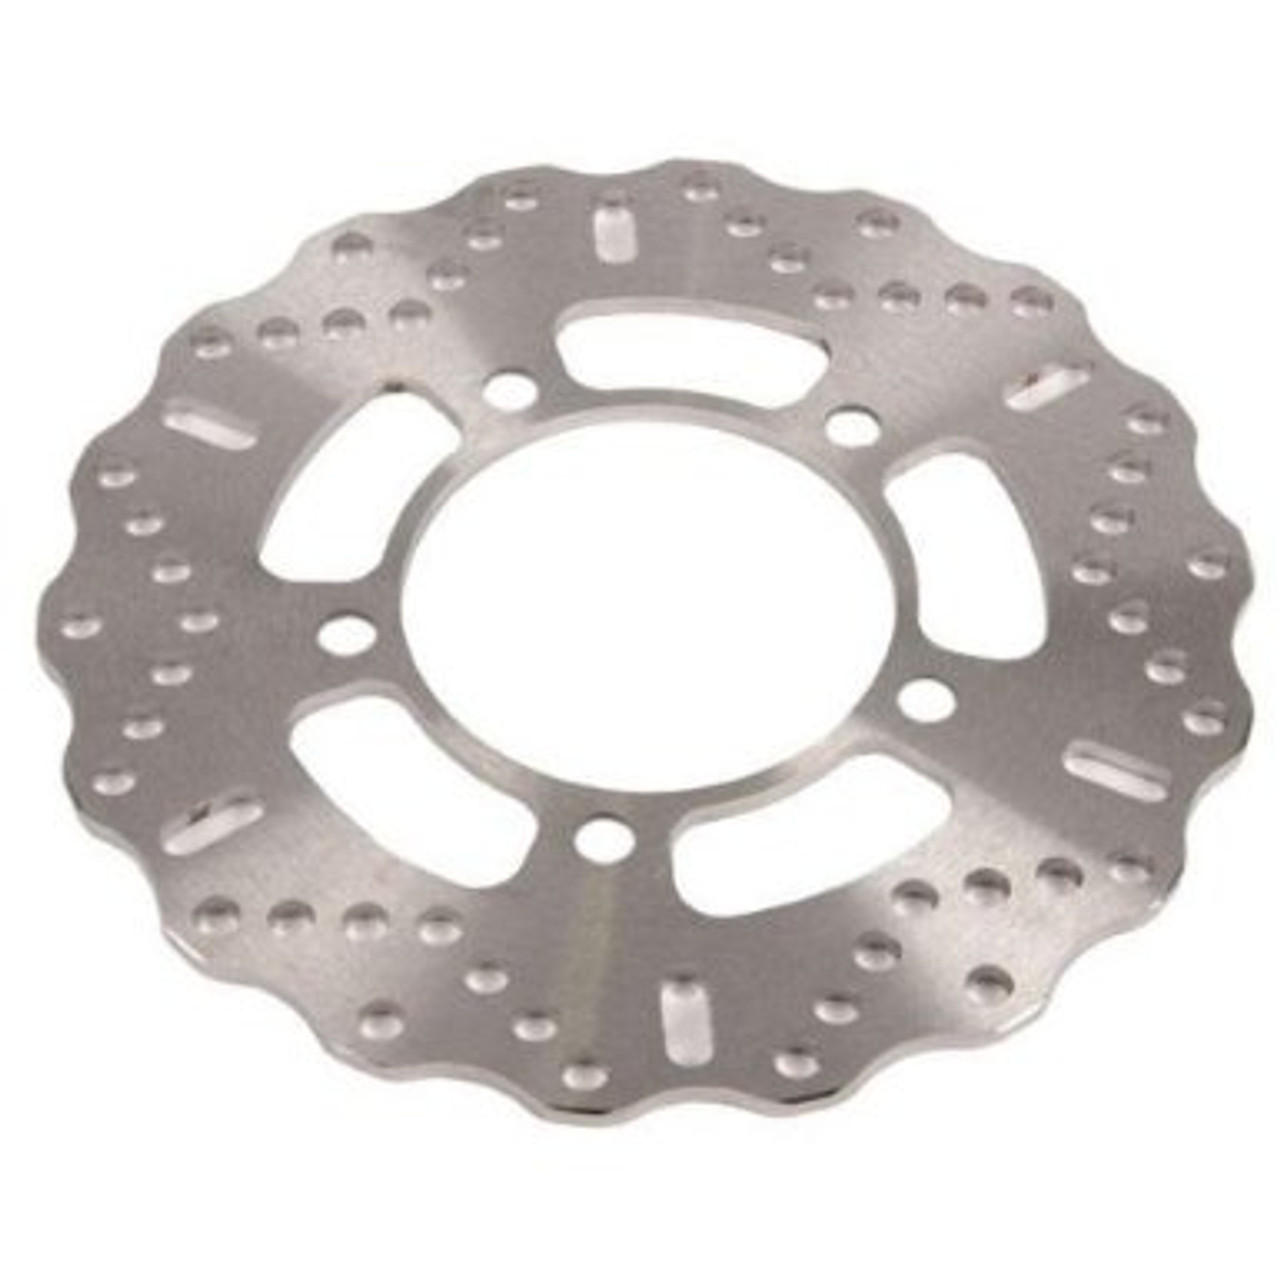 EBC Rear Brake Rotor for Your C14